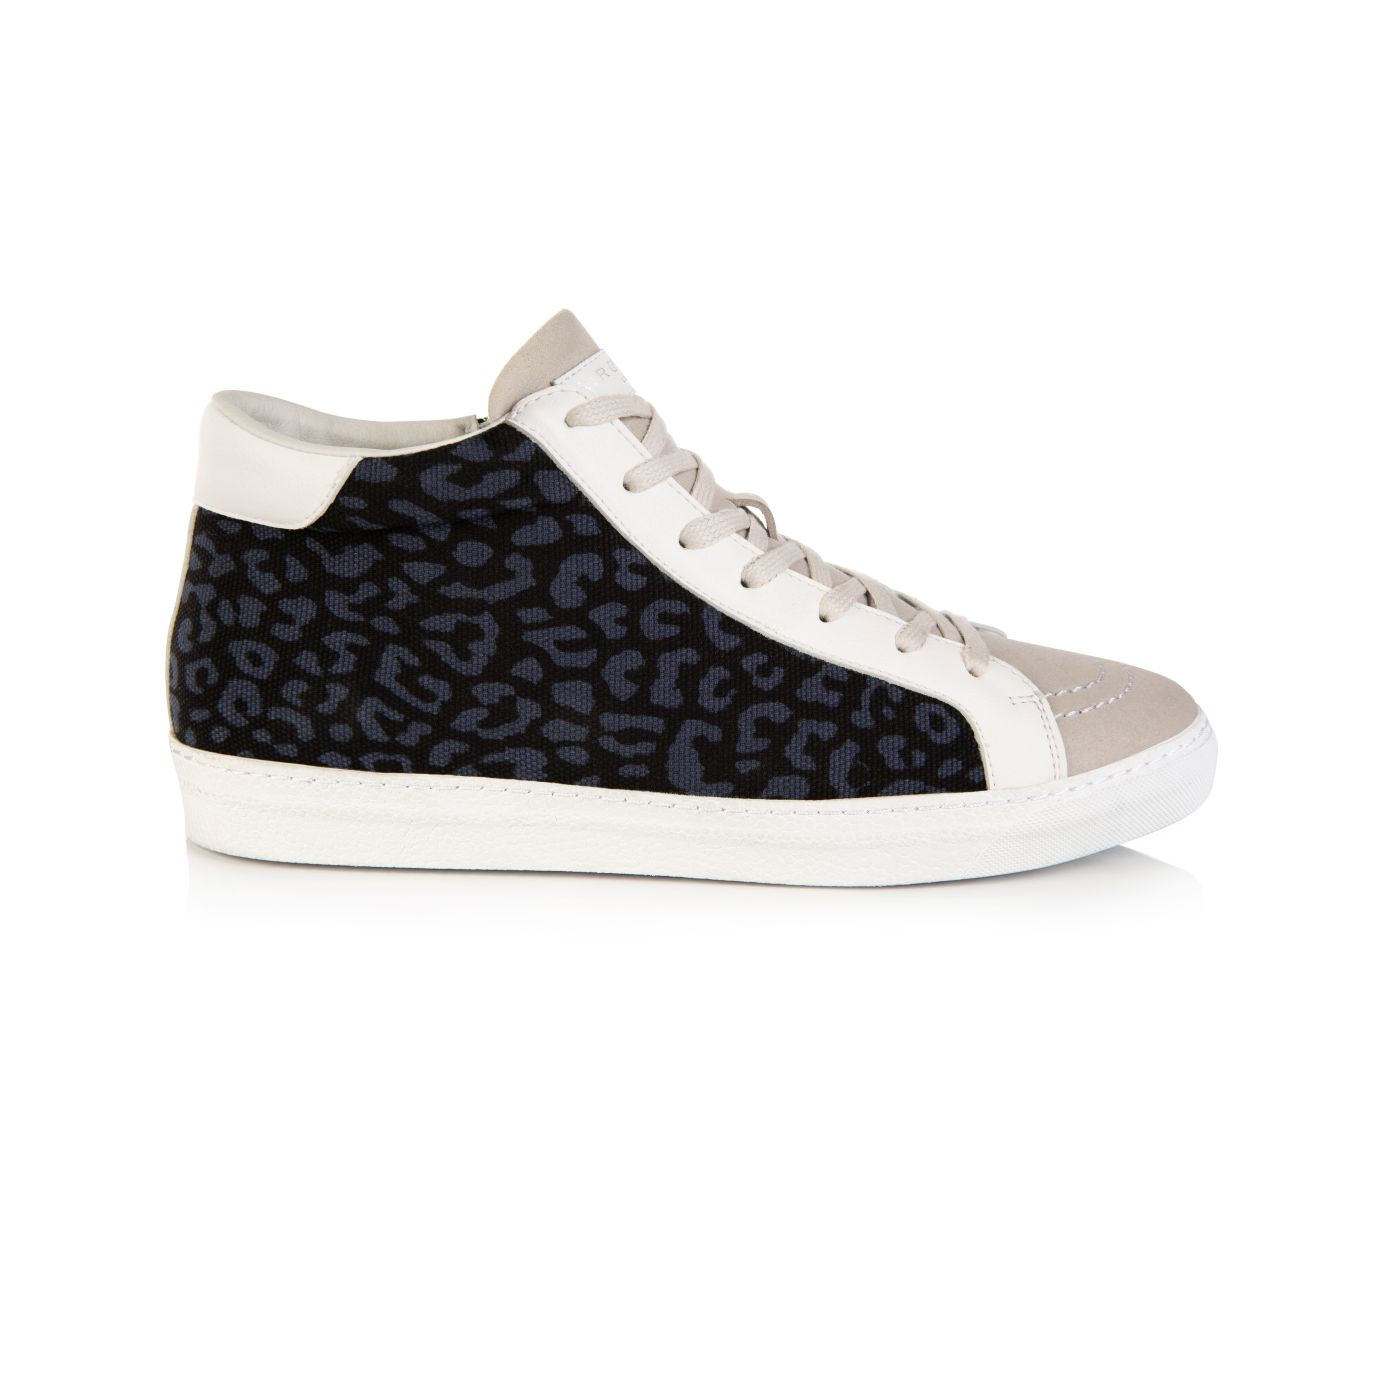 ALTO: INDIGO LEOPARD PRINT HIGH TOPS - (COMING SOON)